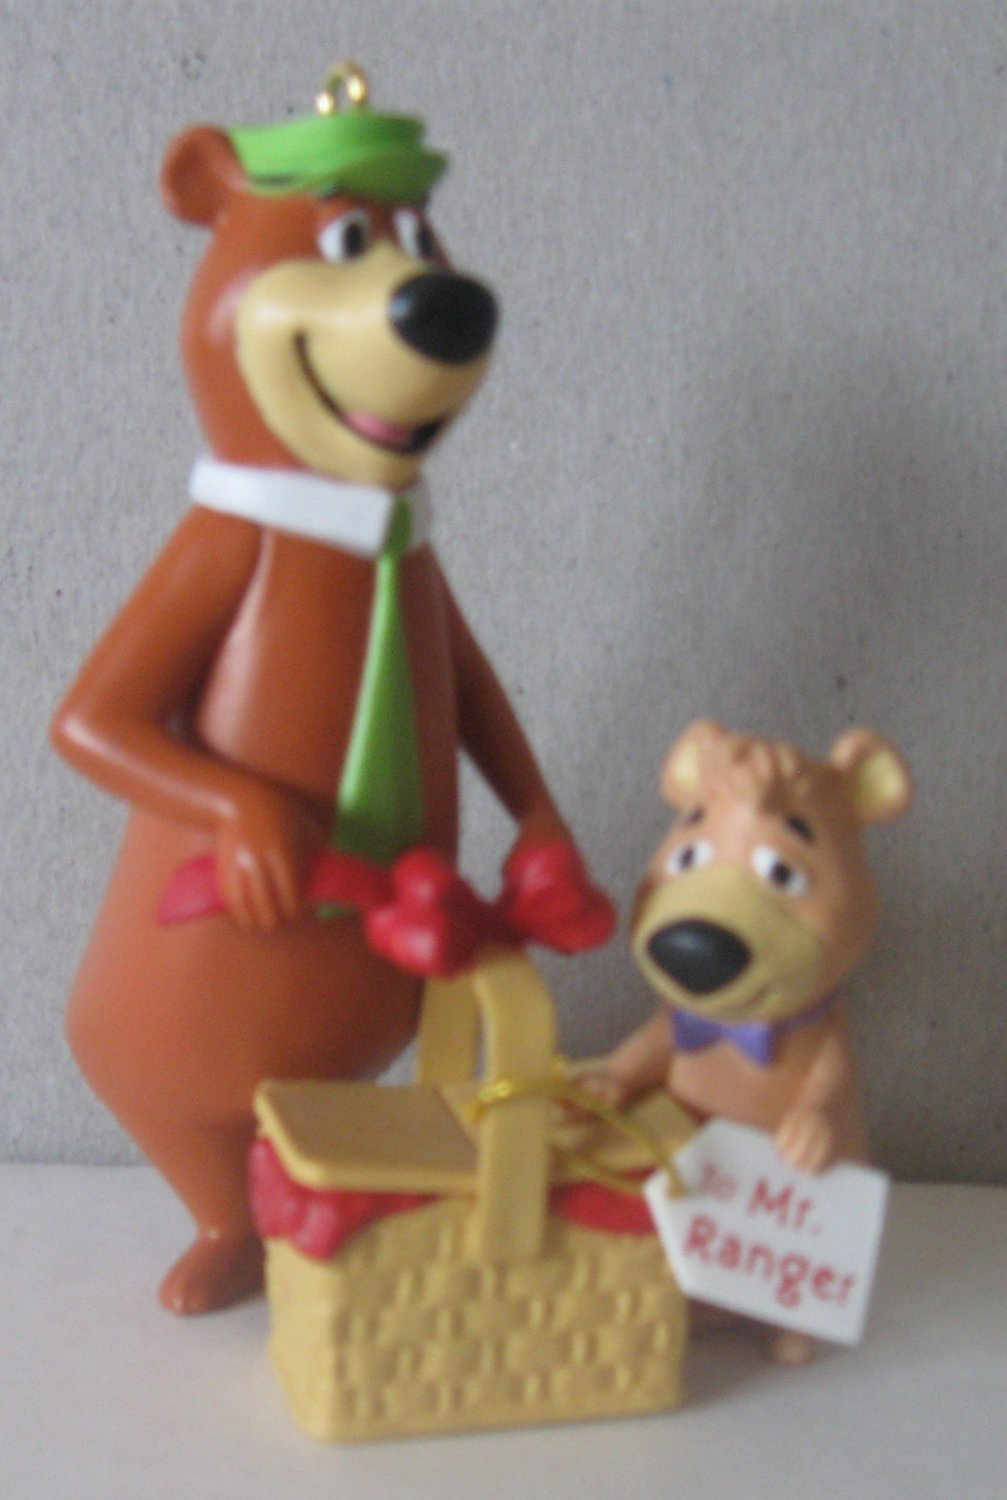 Yogi Bear and Boo Boo - 1996 Hallmark Ornament - Hanna-Barbera - Jellystone